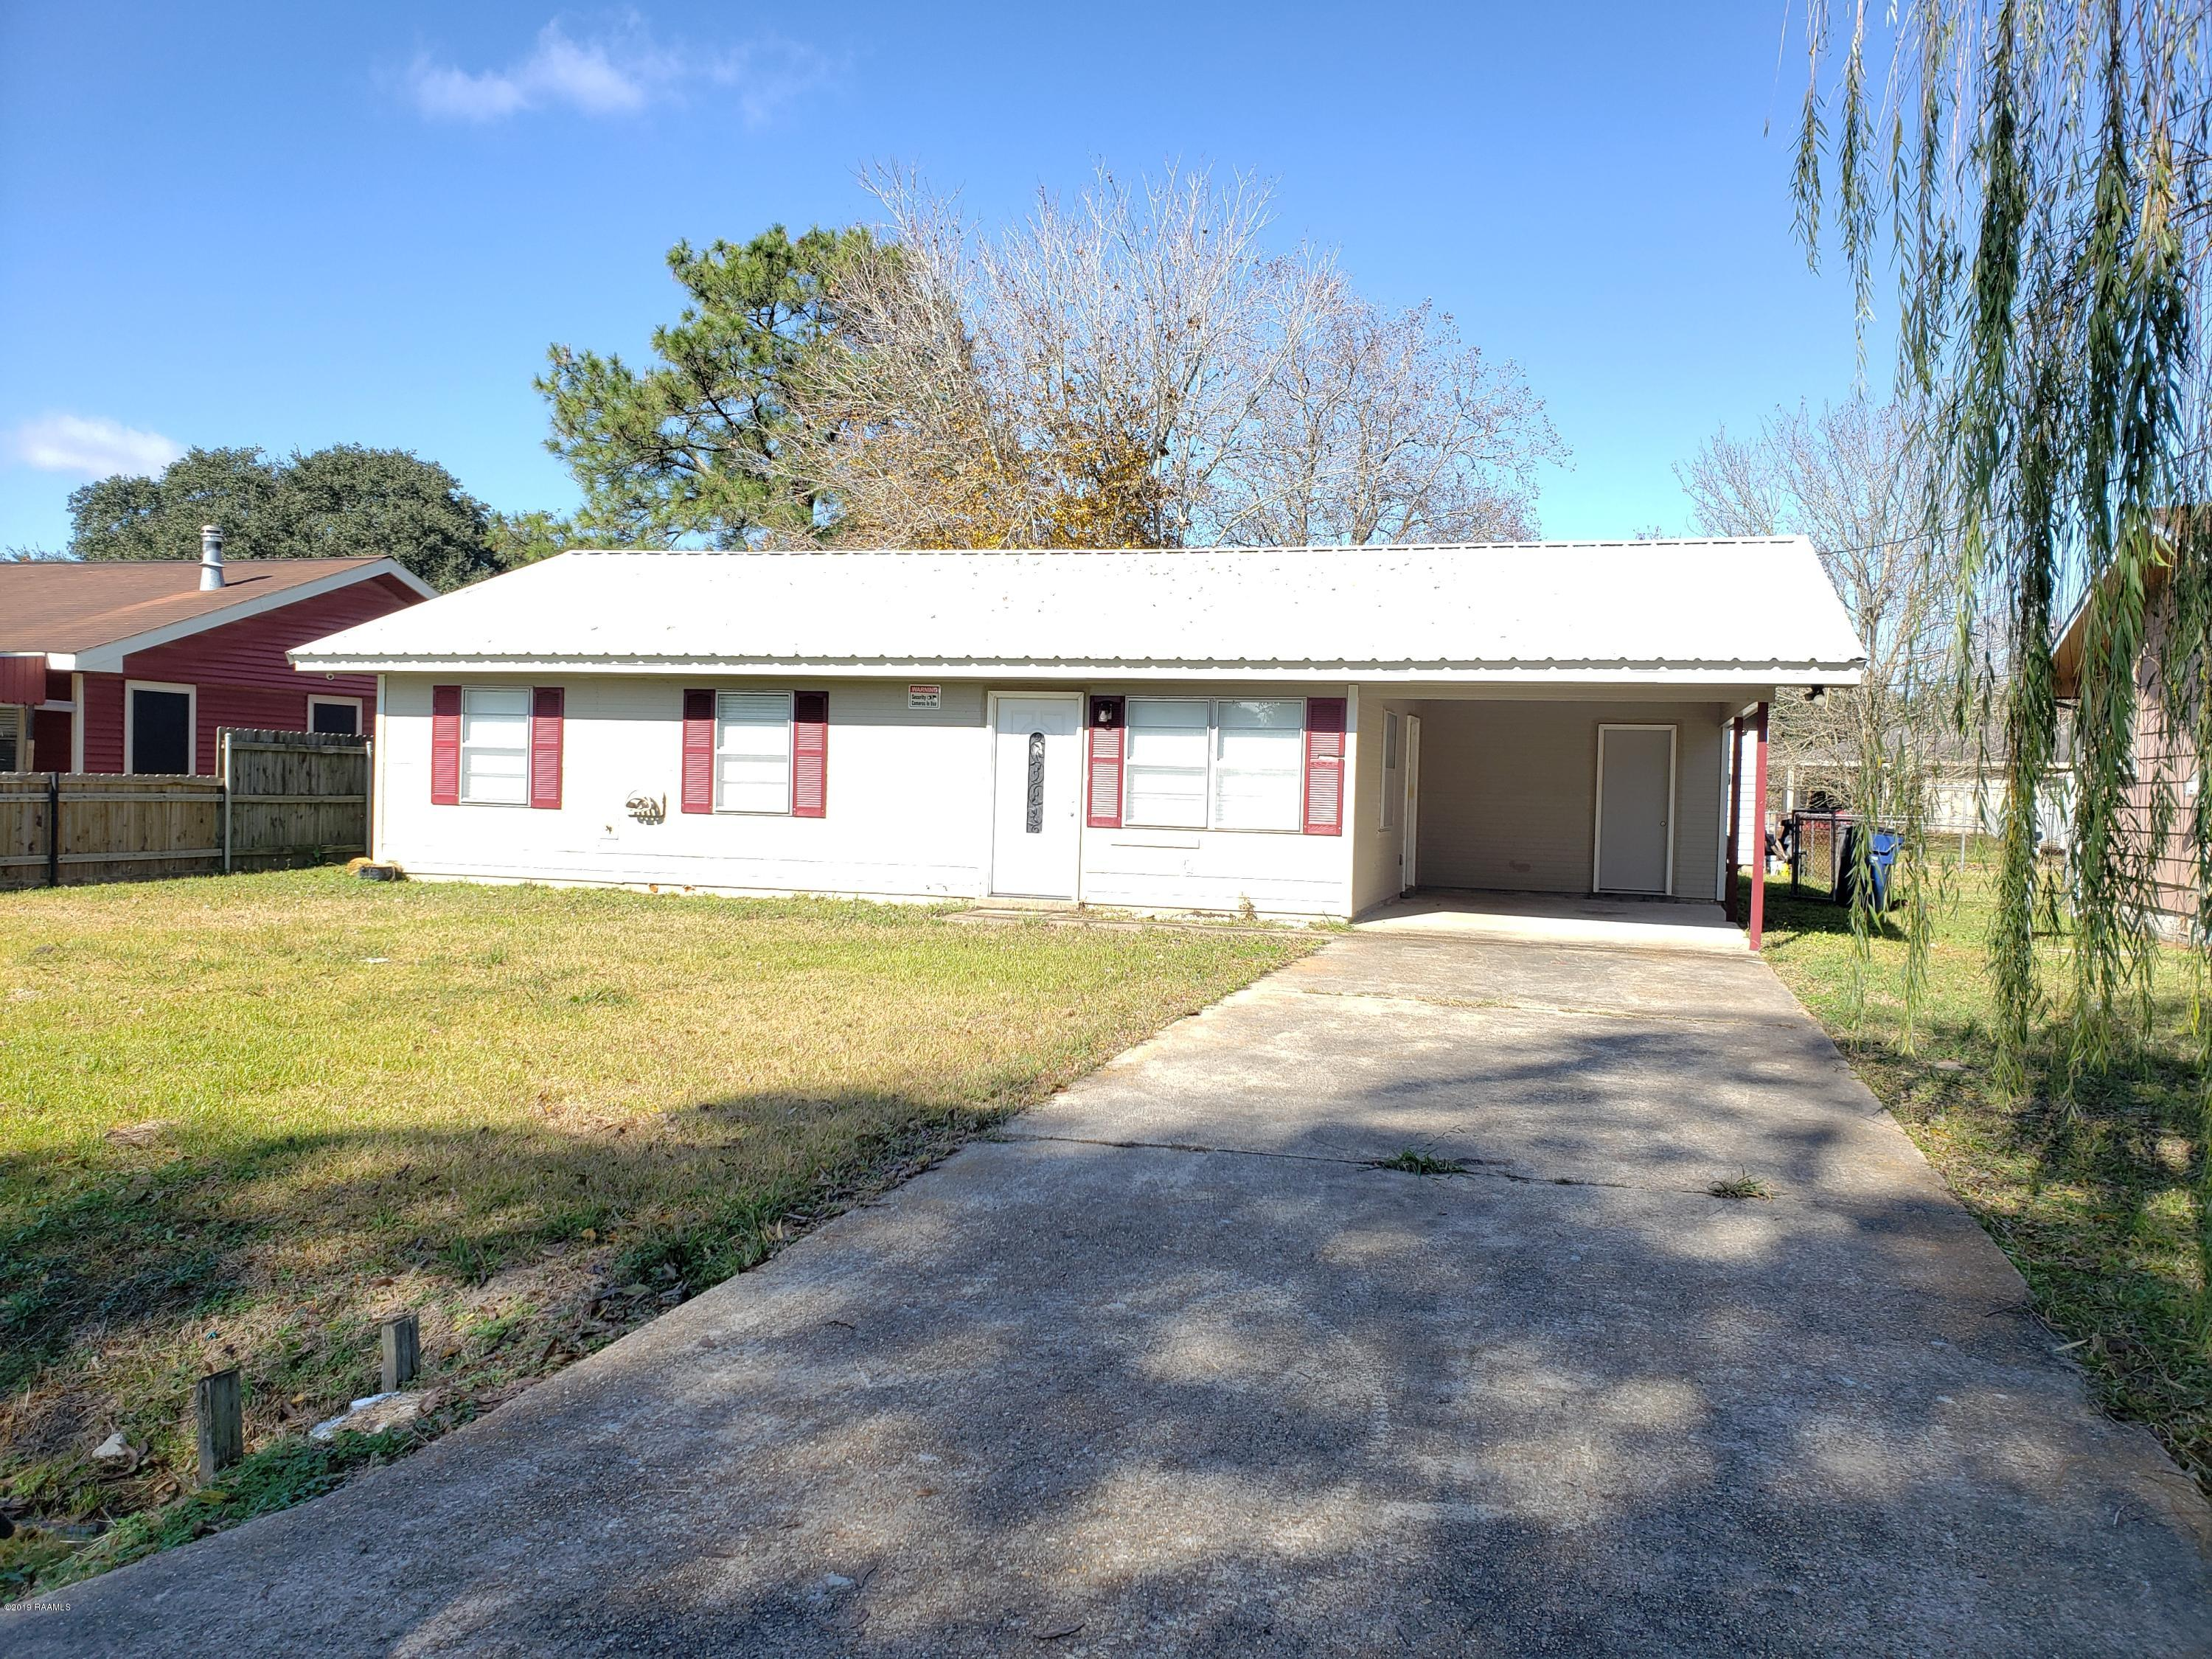 1950 Oak Avenue W, Eunice, LA 70535 Photo #1